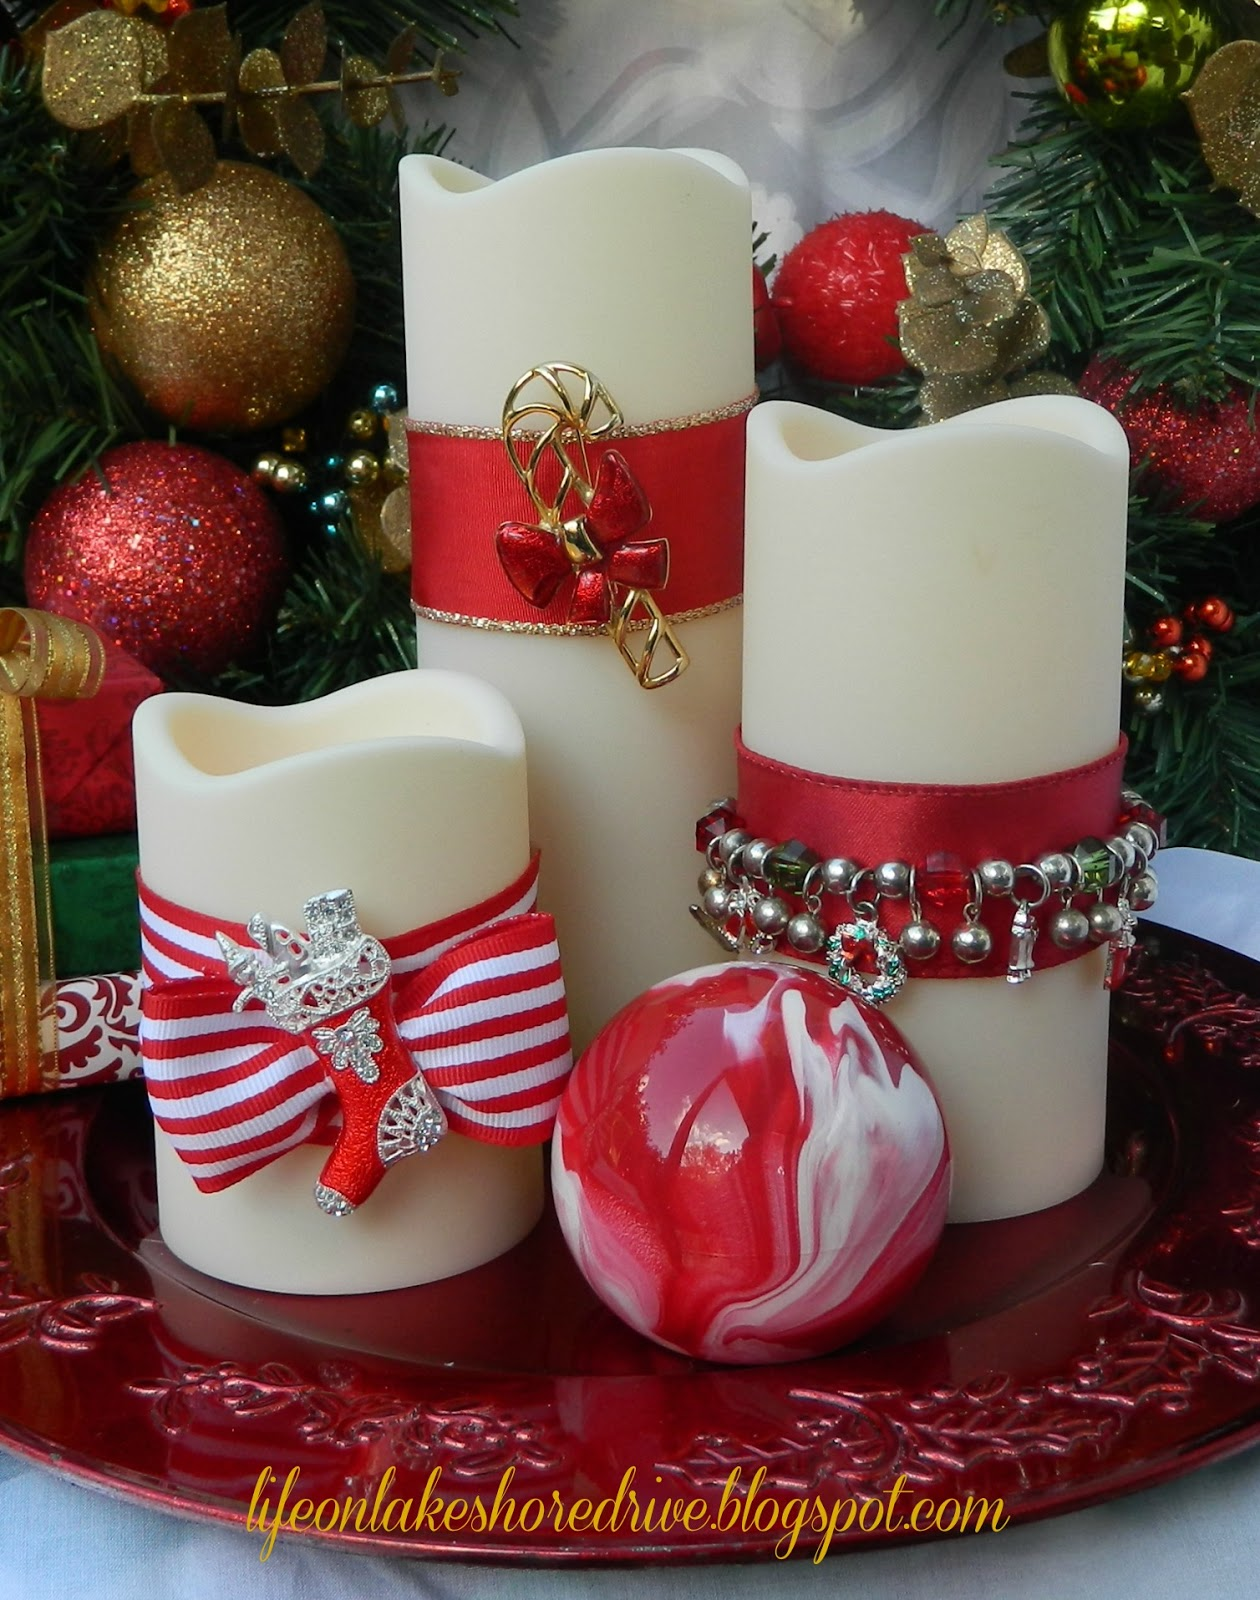 Diy christmas jewelry for candles life on lakeshore drive for Xmas decorations ideas images